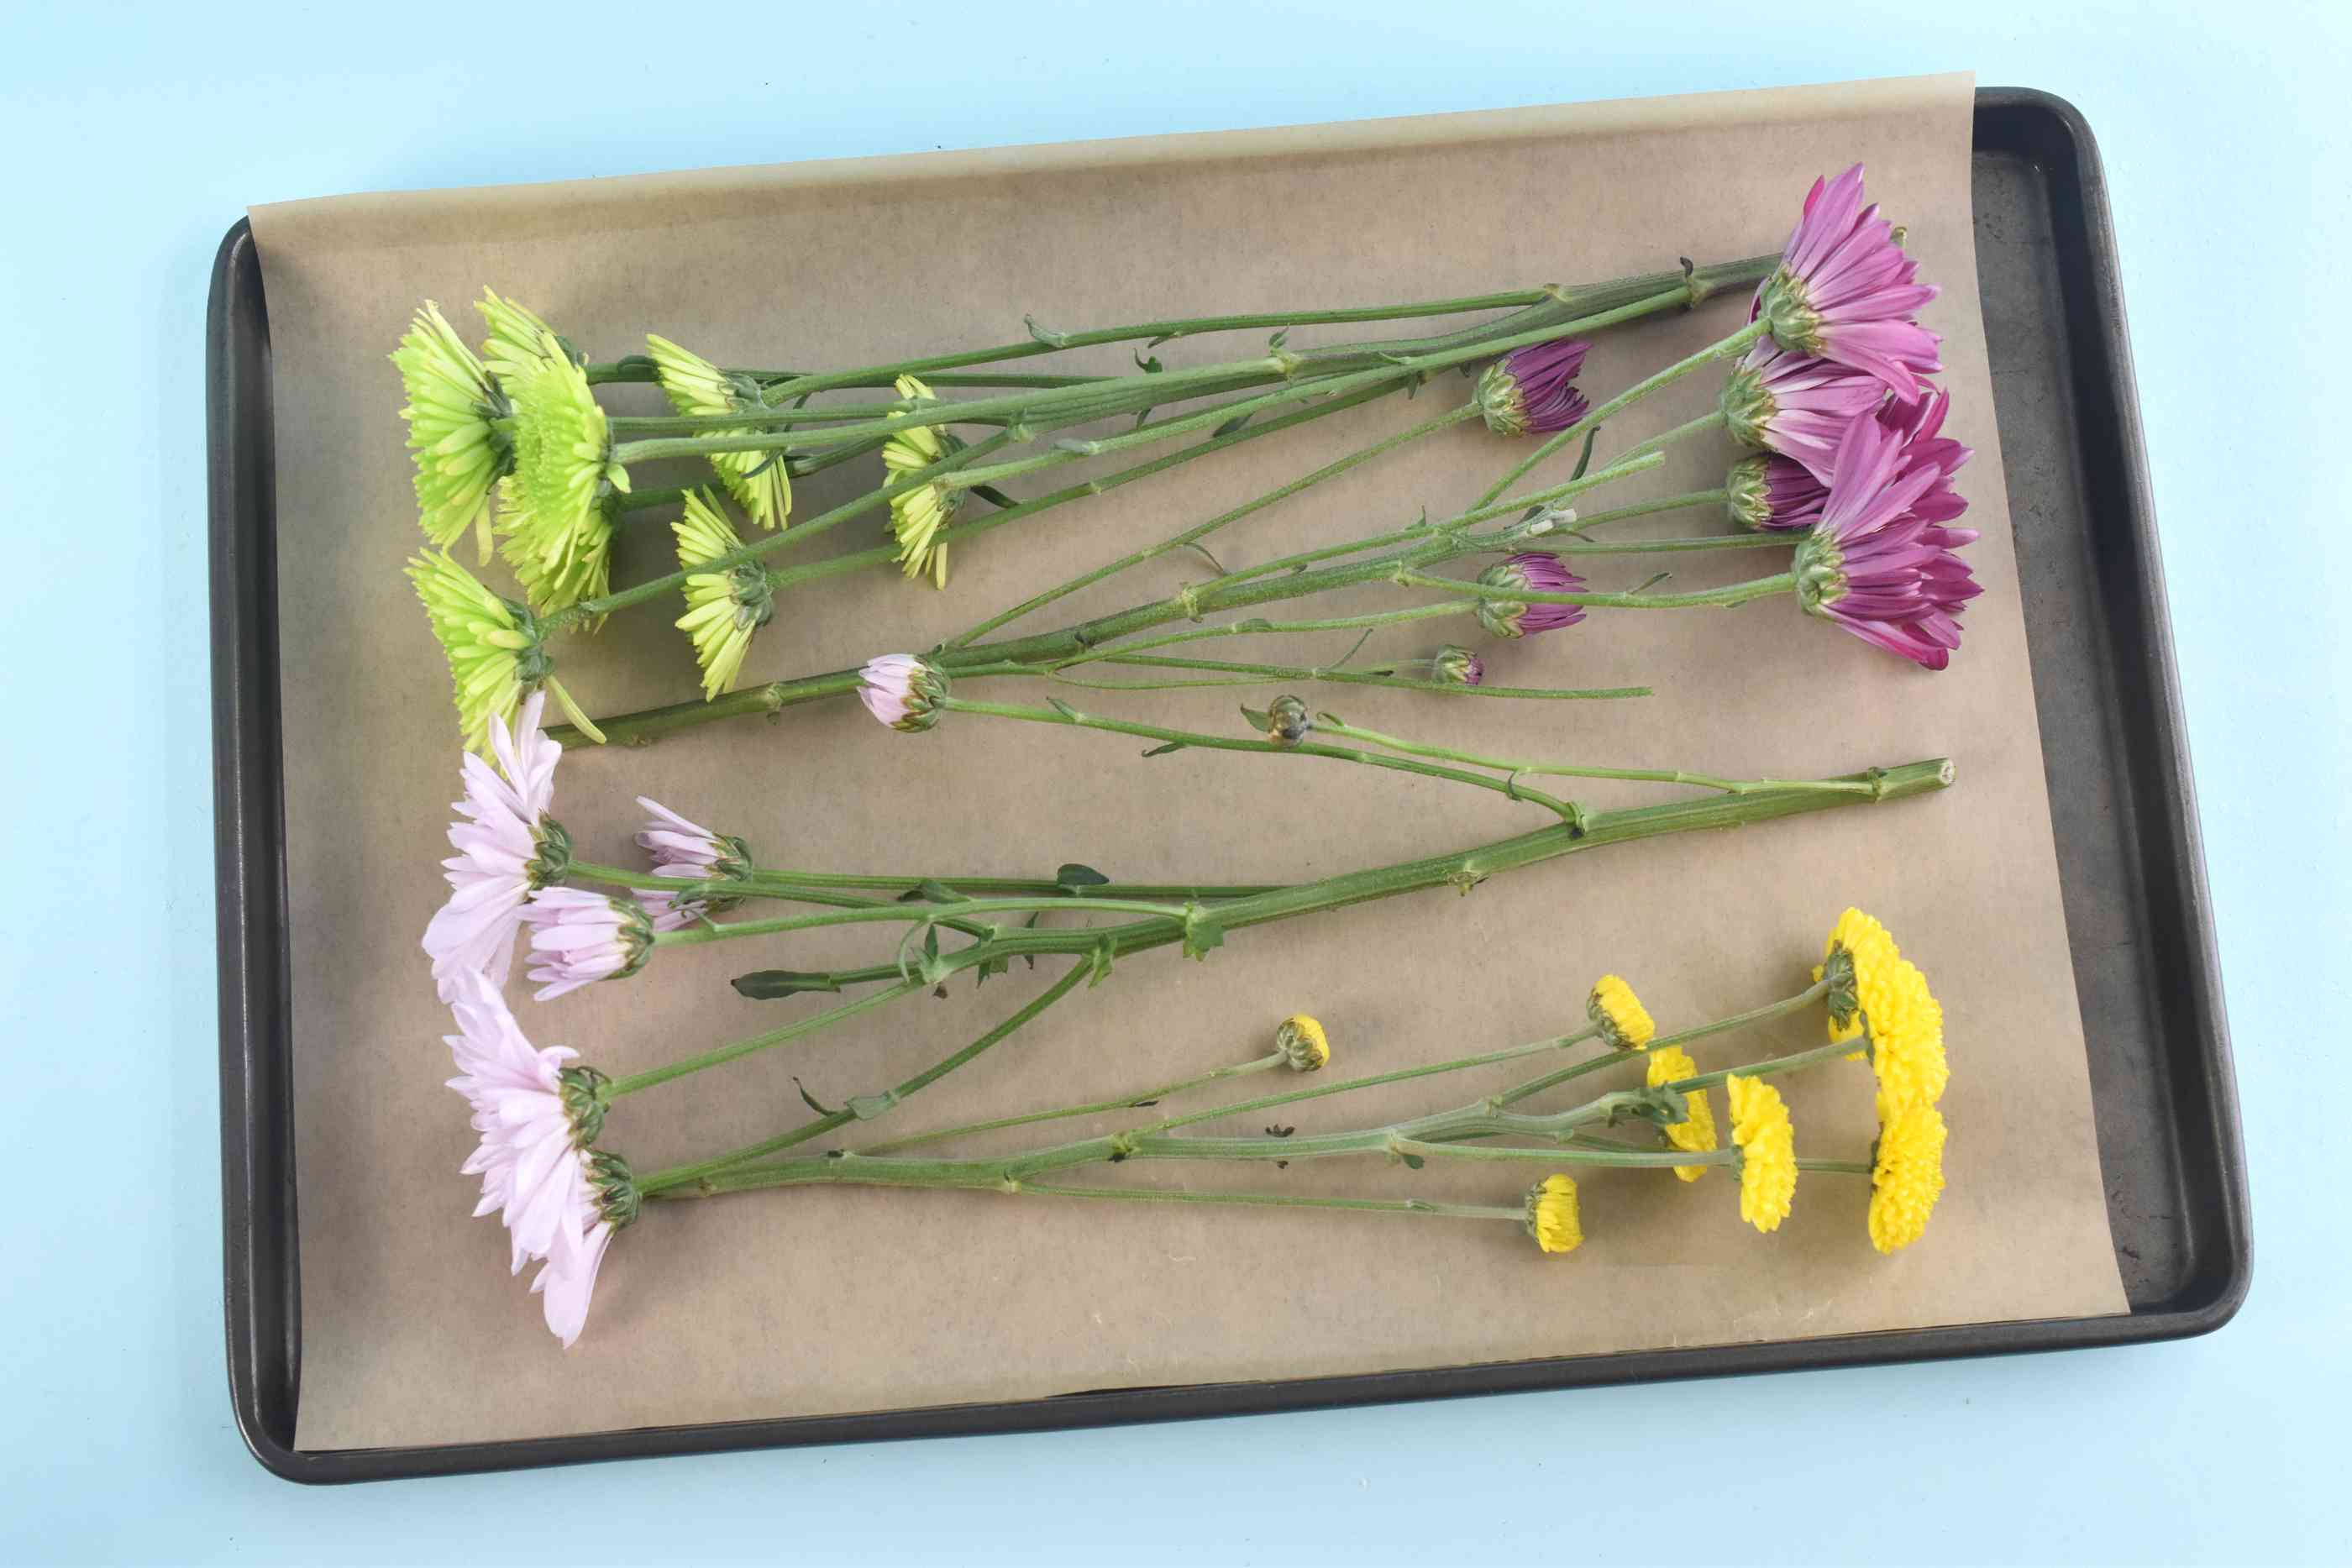 Lay Flower Stems on a Pan to Dry in the Oven